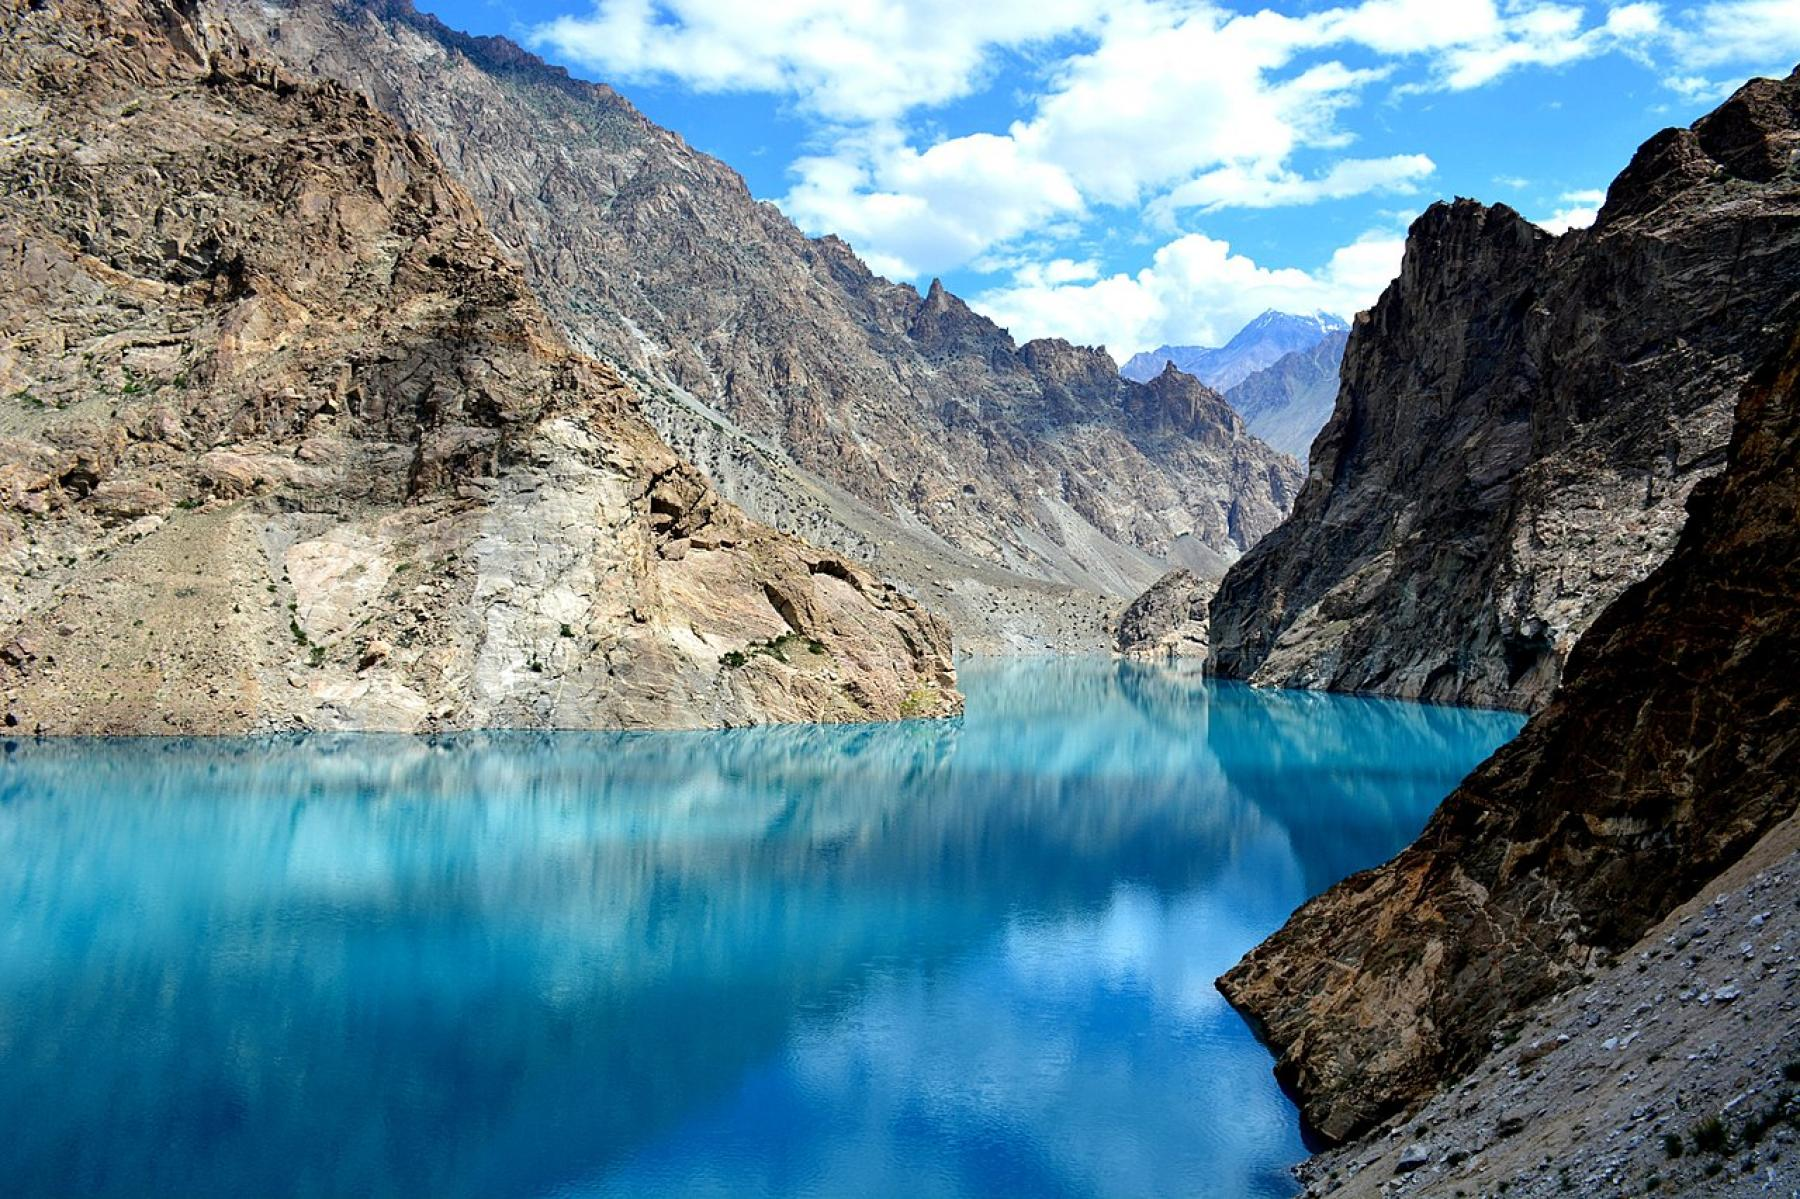 A scenic road trip through the highest mountain ranges in the world - Karakorum starting at Kashgar, Xinjiang, China